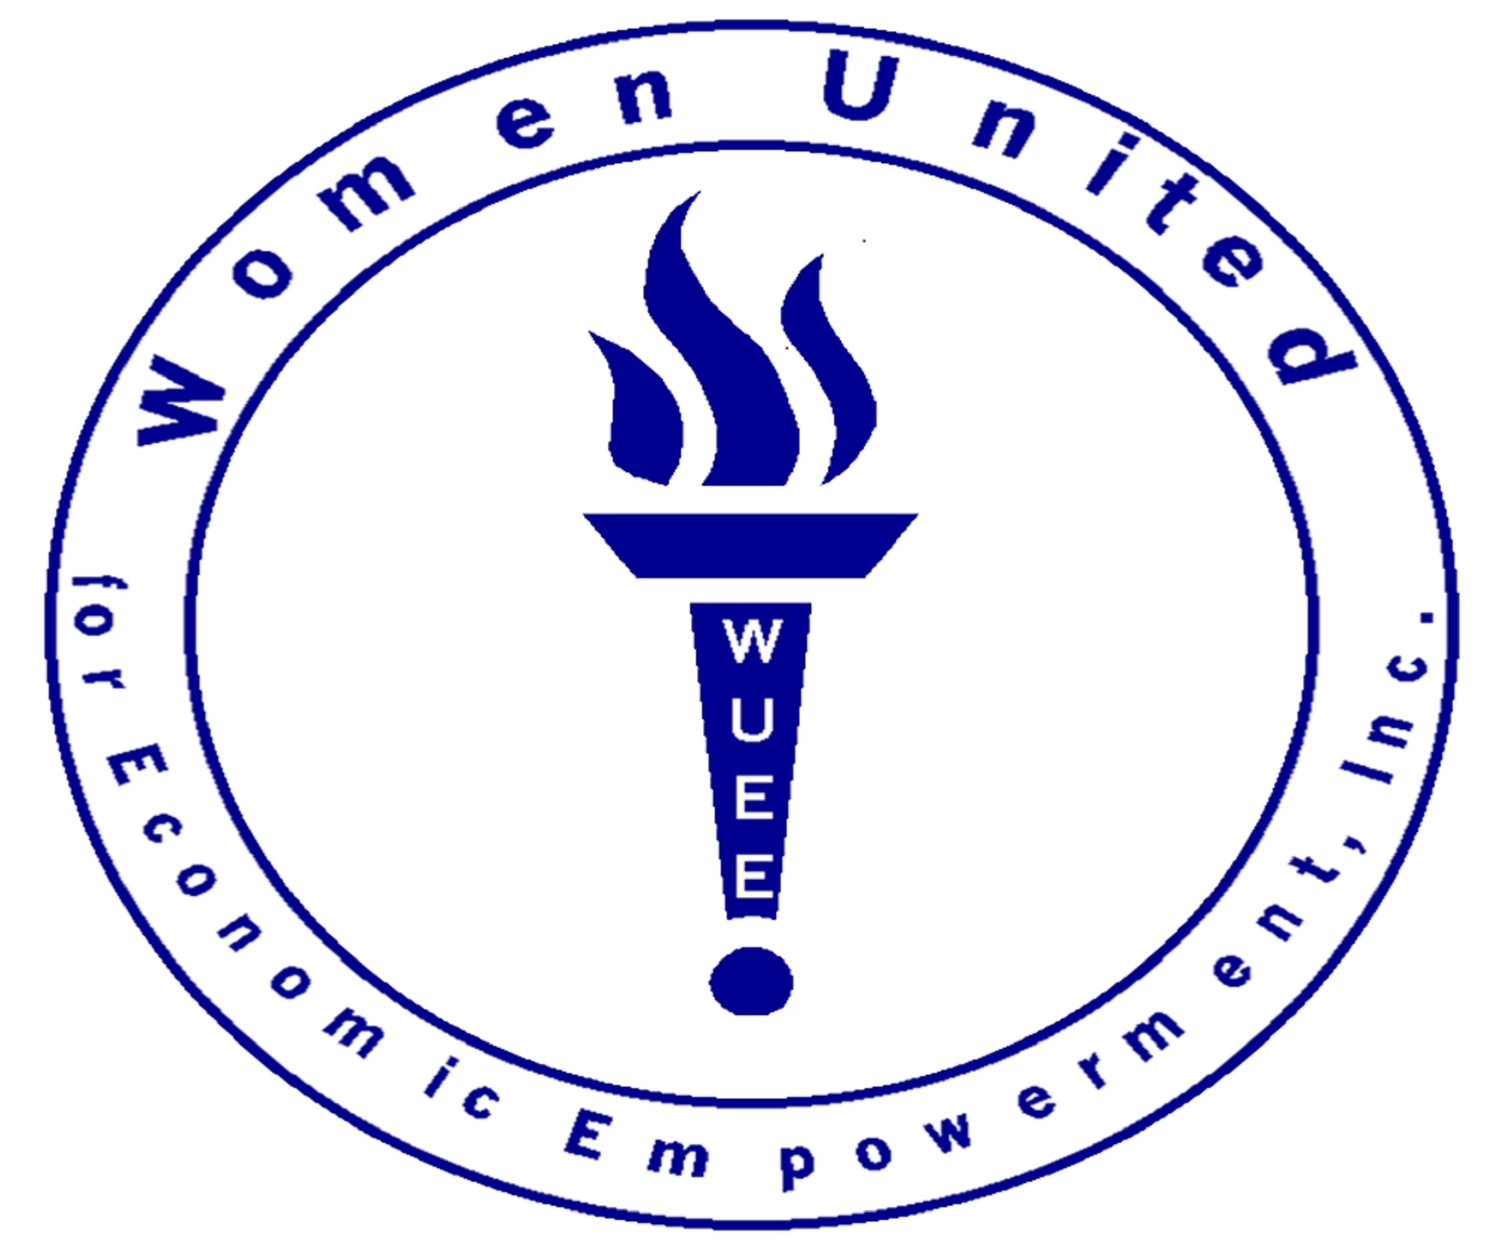 Women United for Economic Empowerment